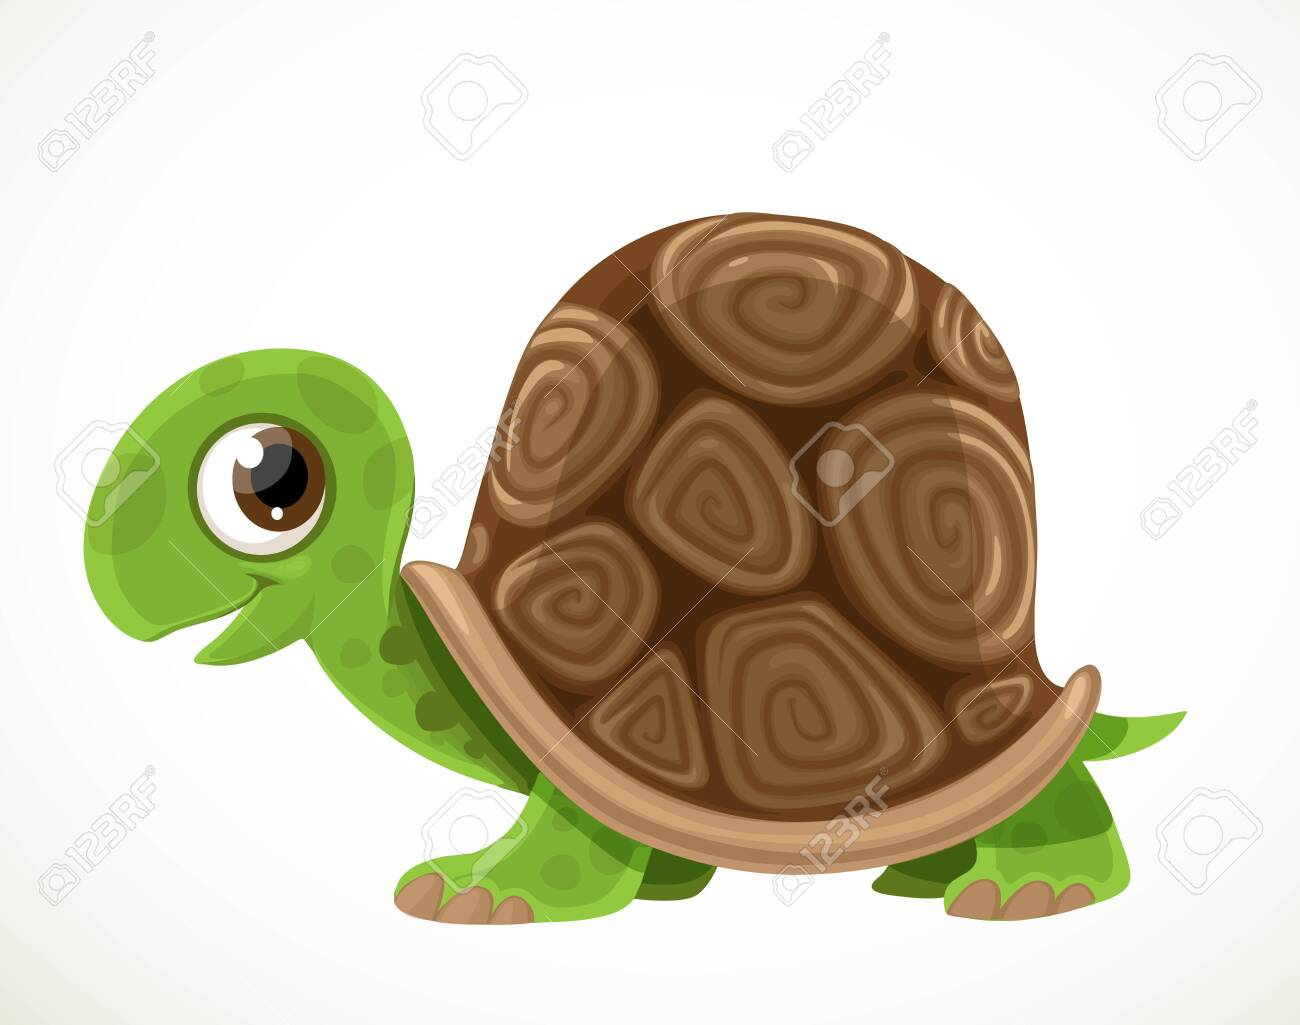 Cute Cartoon Green Turtle With A Big Tortoise Shell Isolated